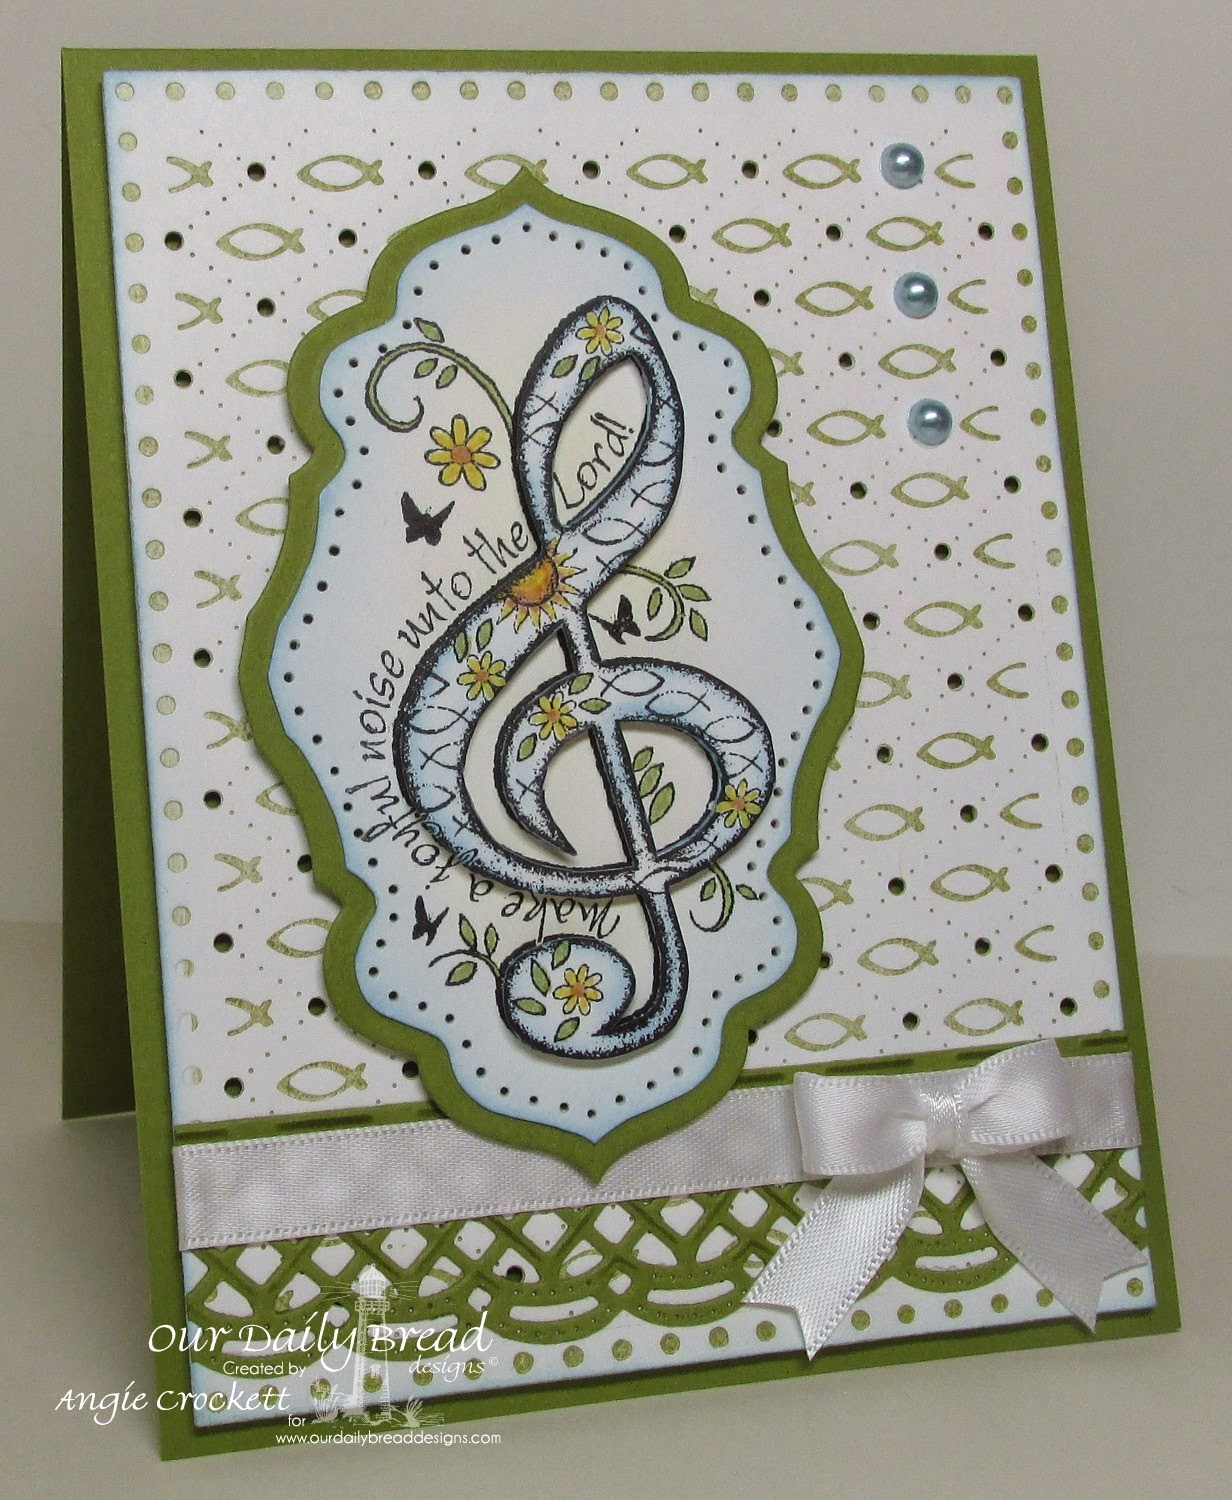 ODBD Just A Note, ODBD Custom Beautiful Borders Dies, ODBD Custom Antique Labels and Border Dies, ODBD Faithful Fish Pattern Die and Debossing Plate, Card Designer Angie Crockett